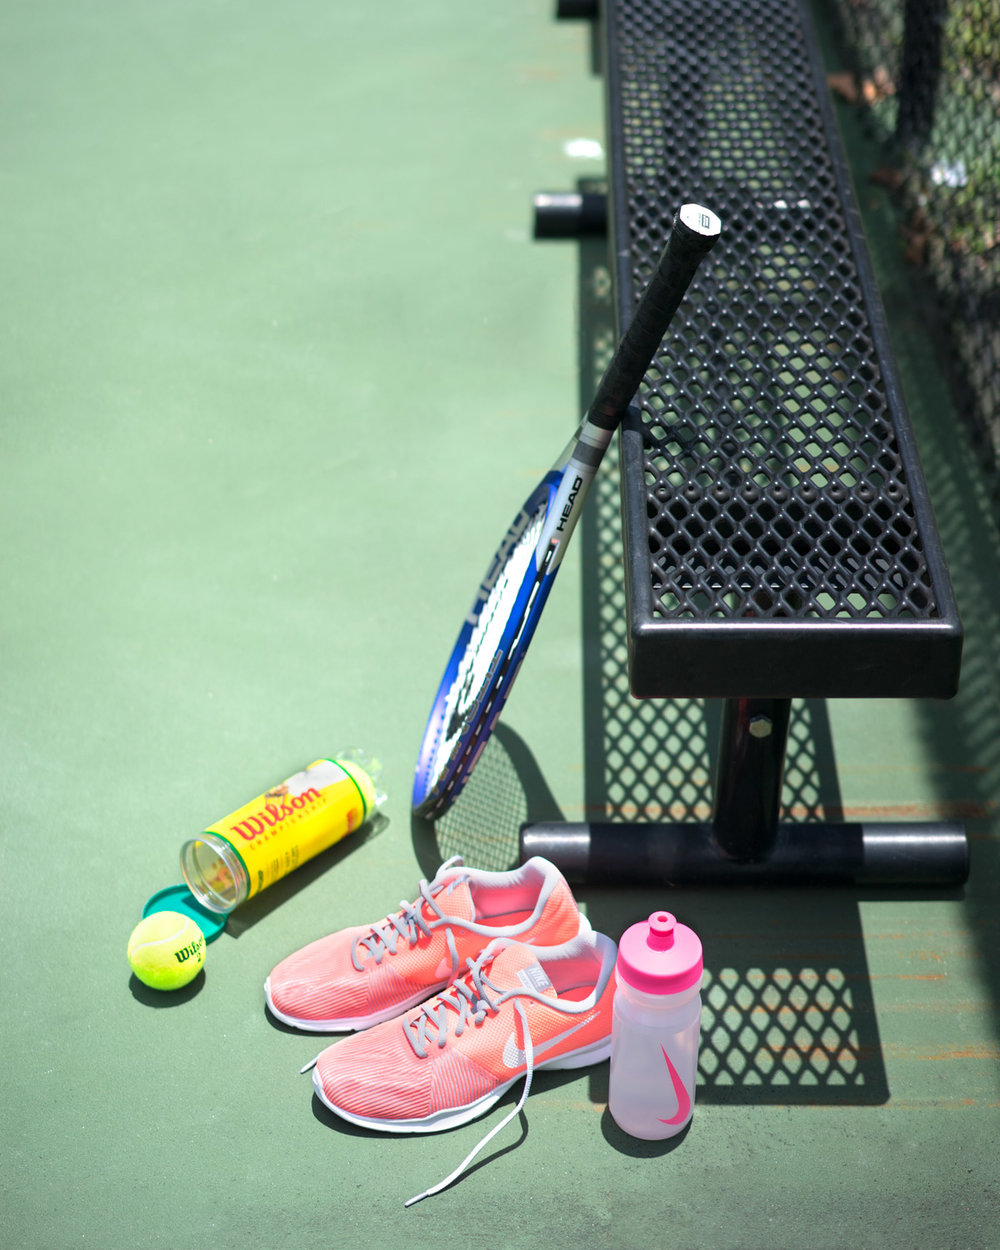 Tennis court essentials